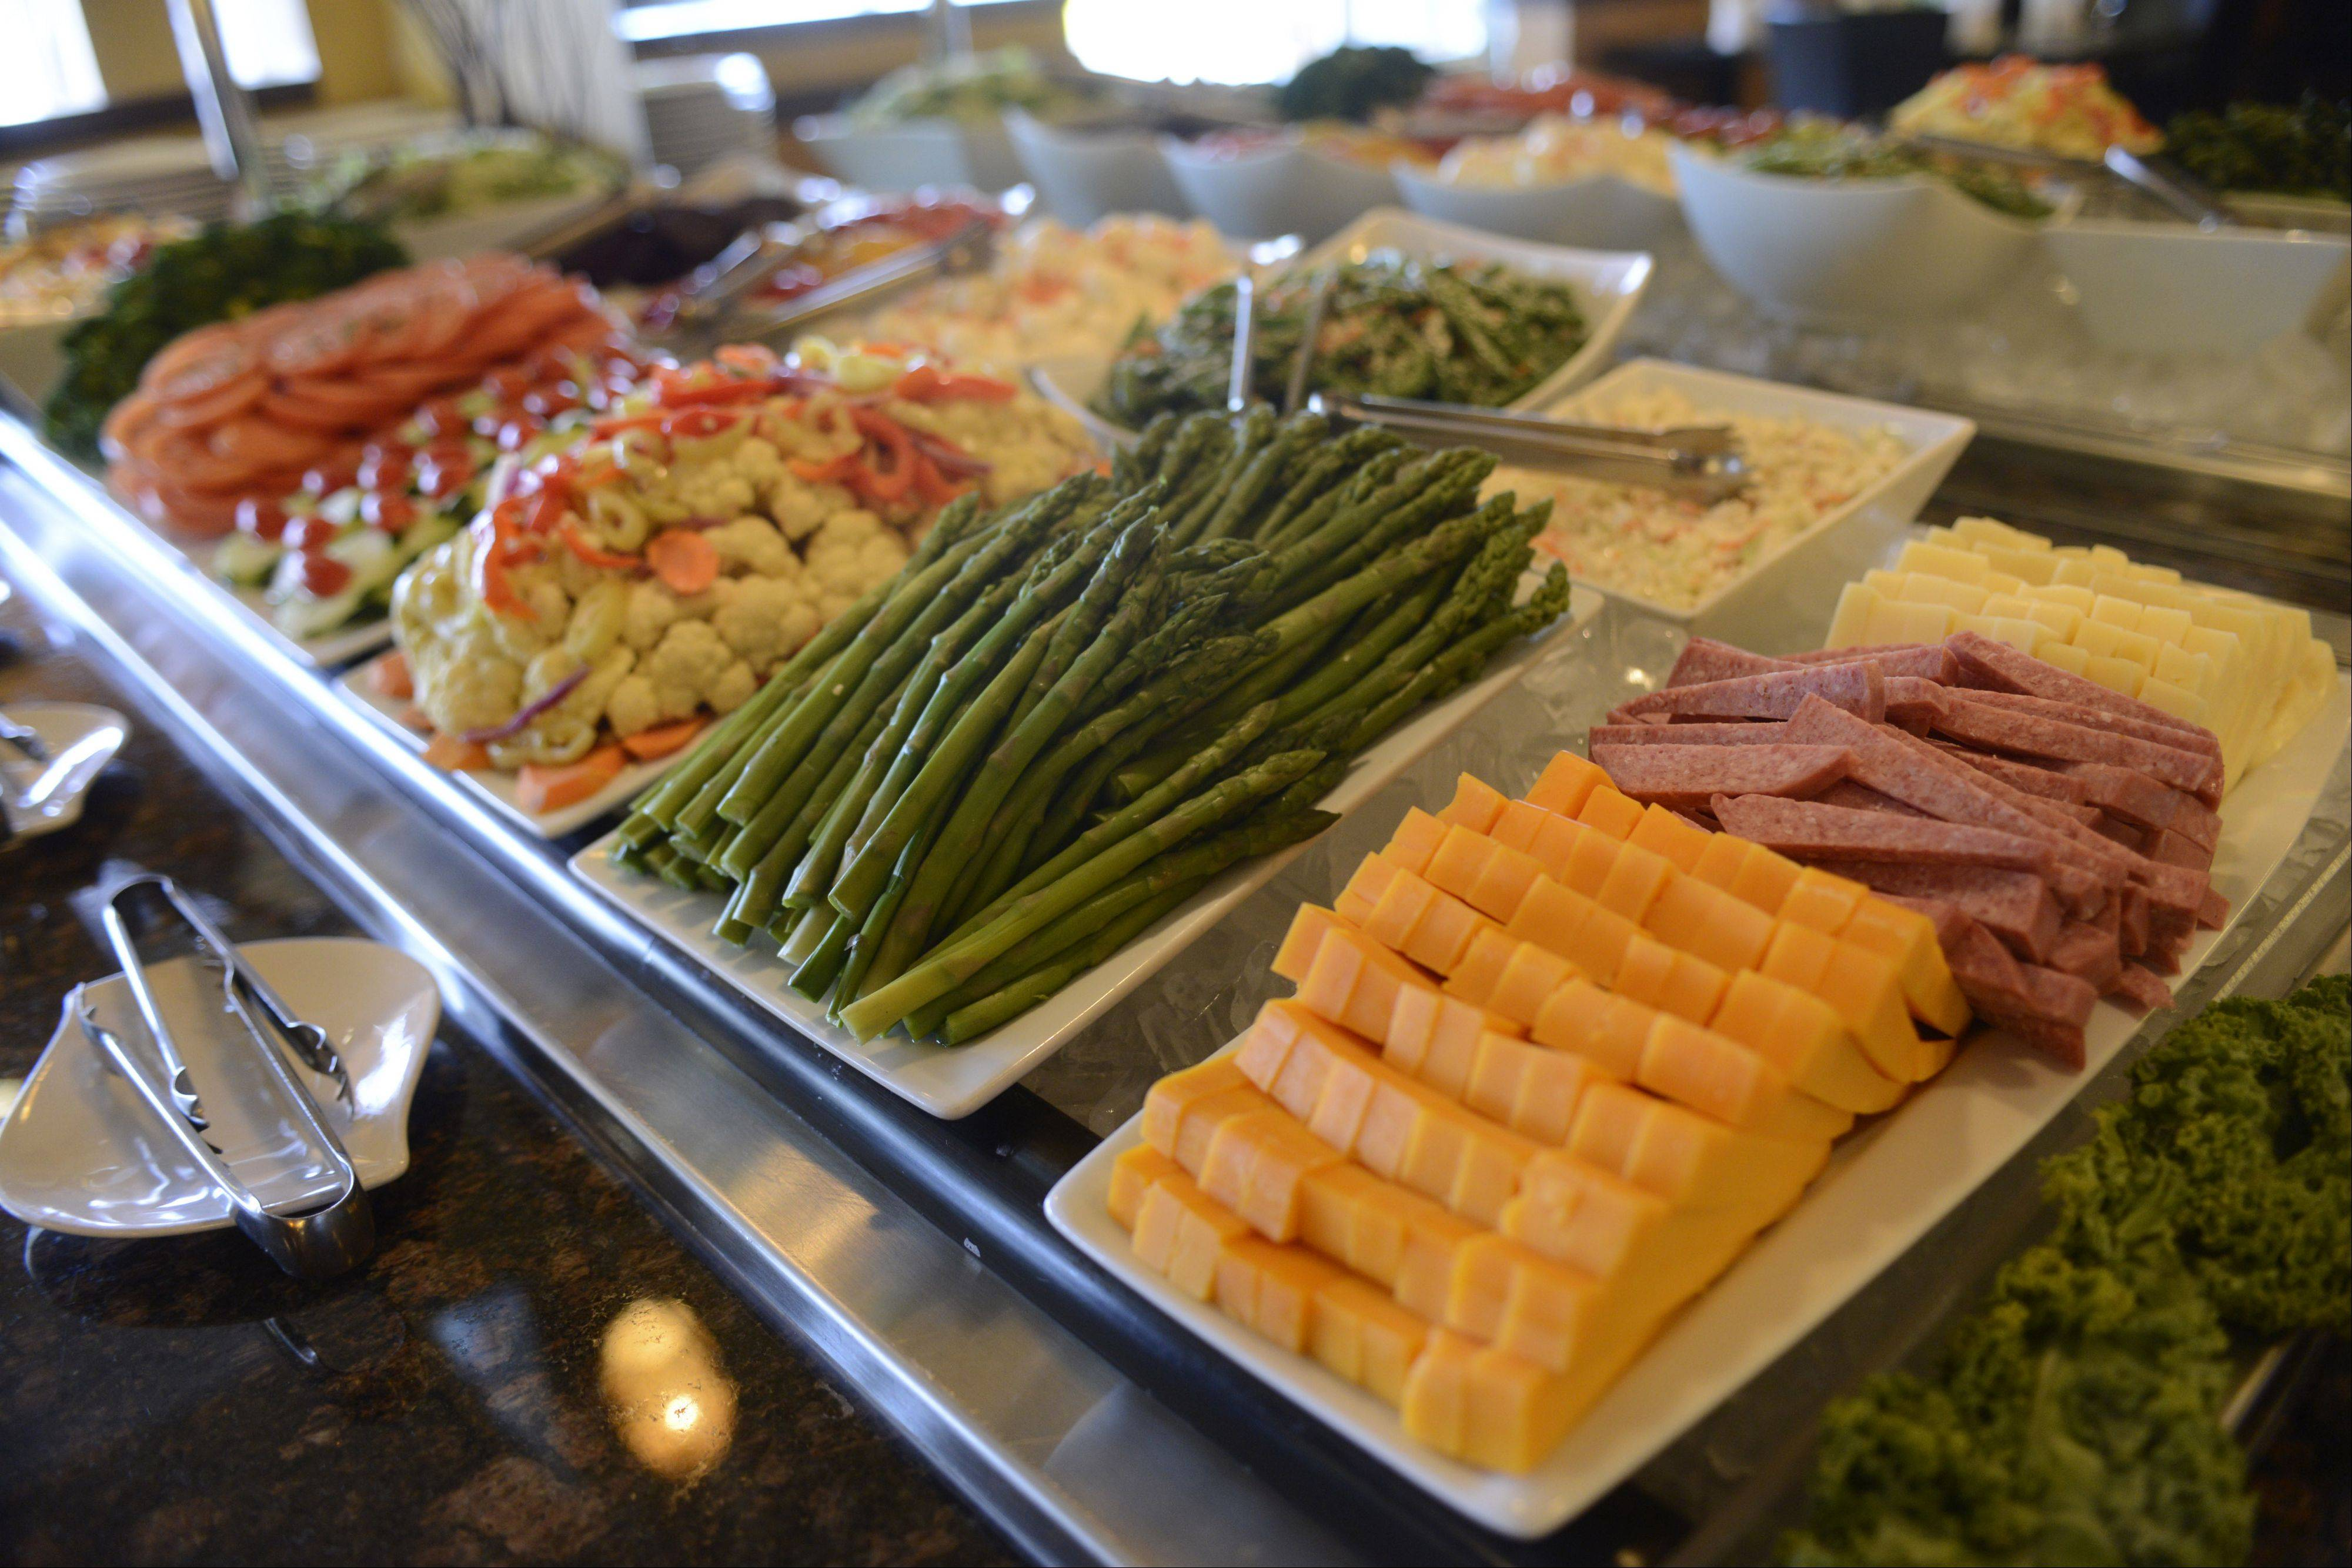 Brazil Express' salad bar offers a variety of cold salads and hot soups.